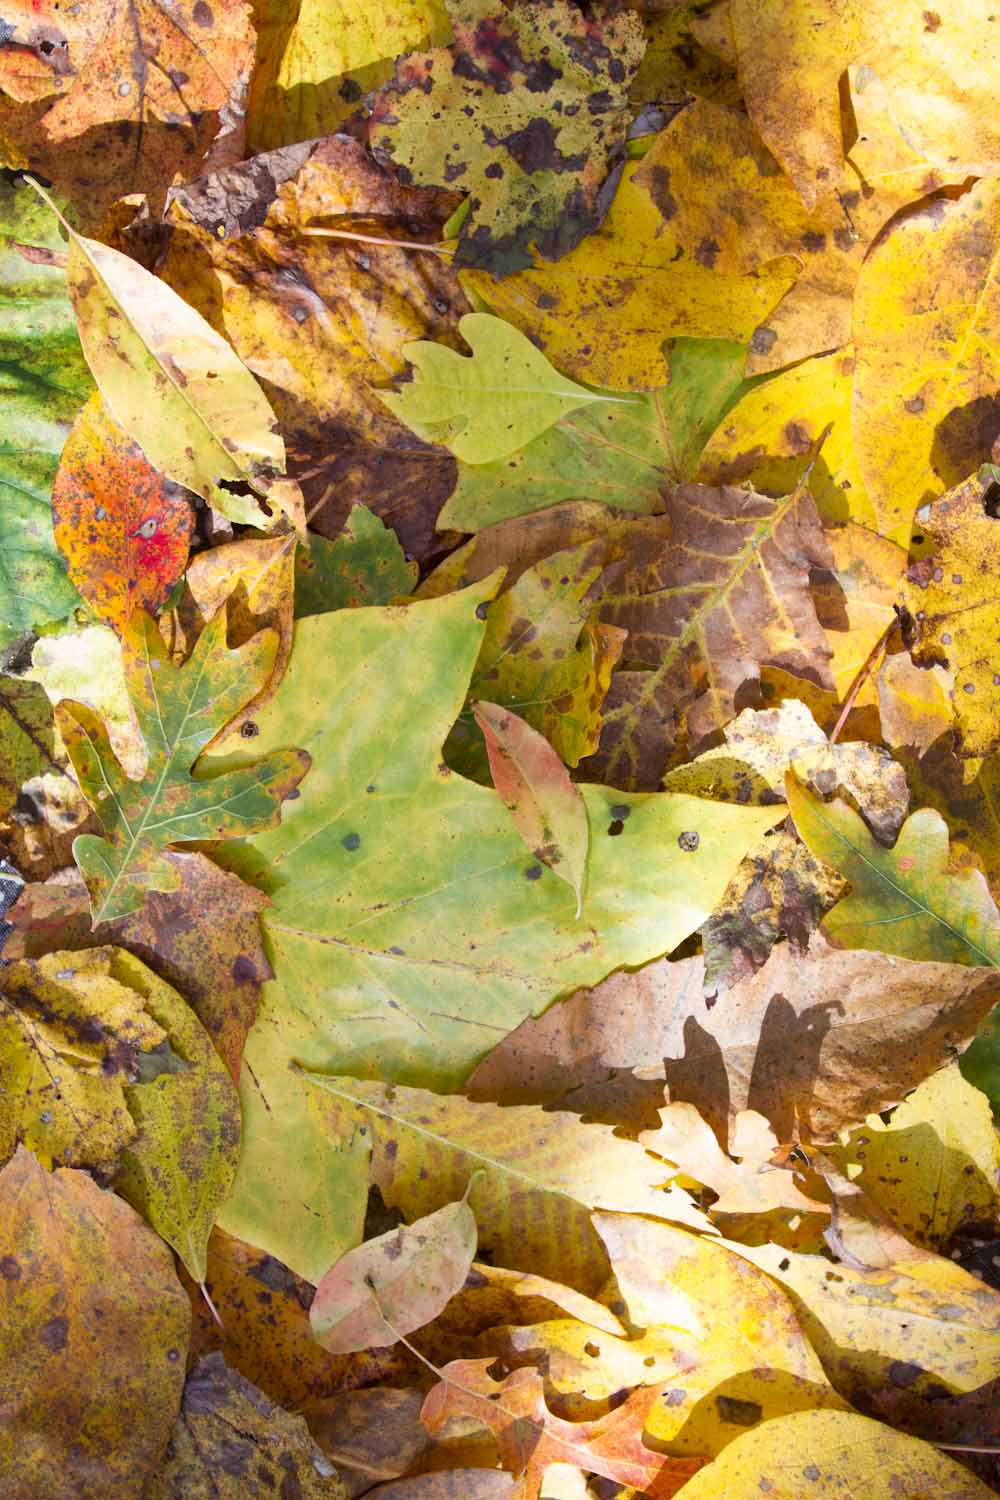 yellows_colors_forest-7924.jpg